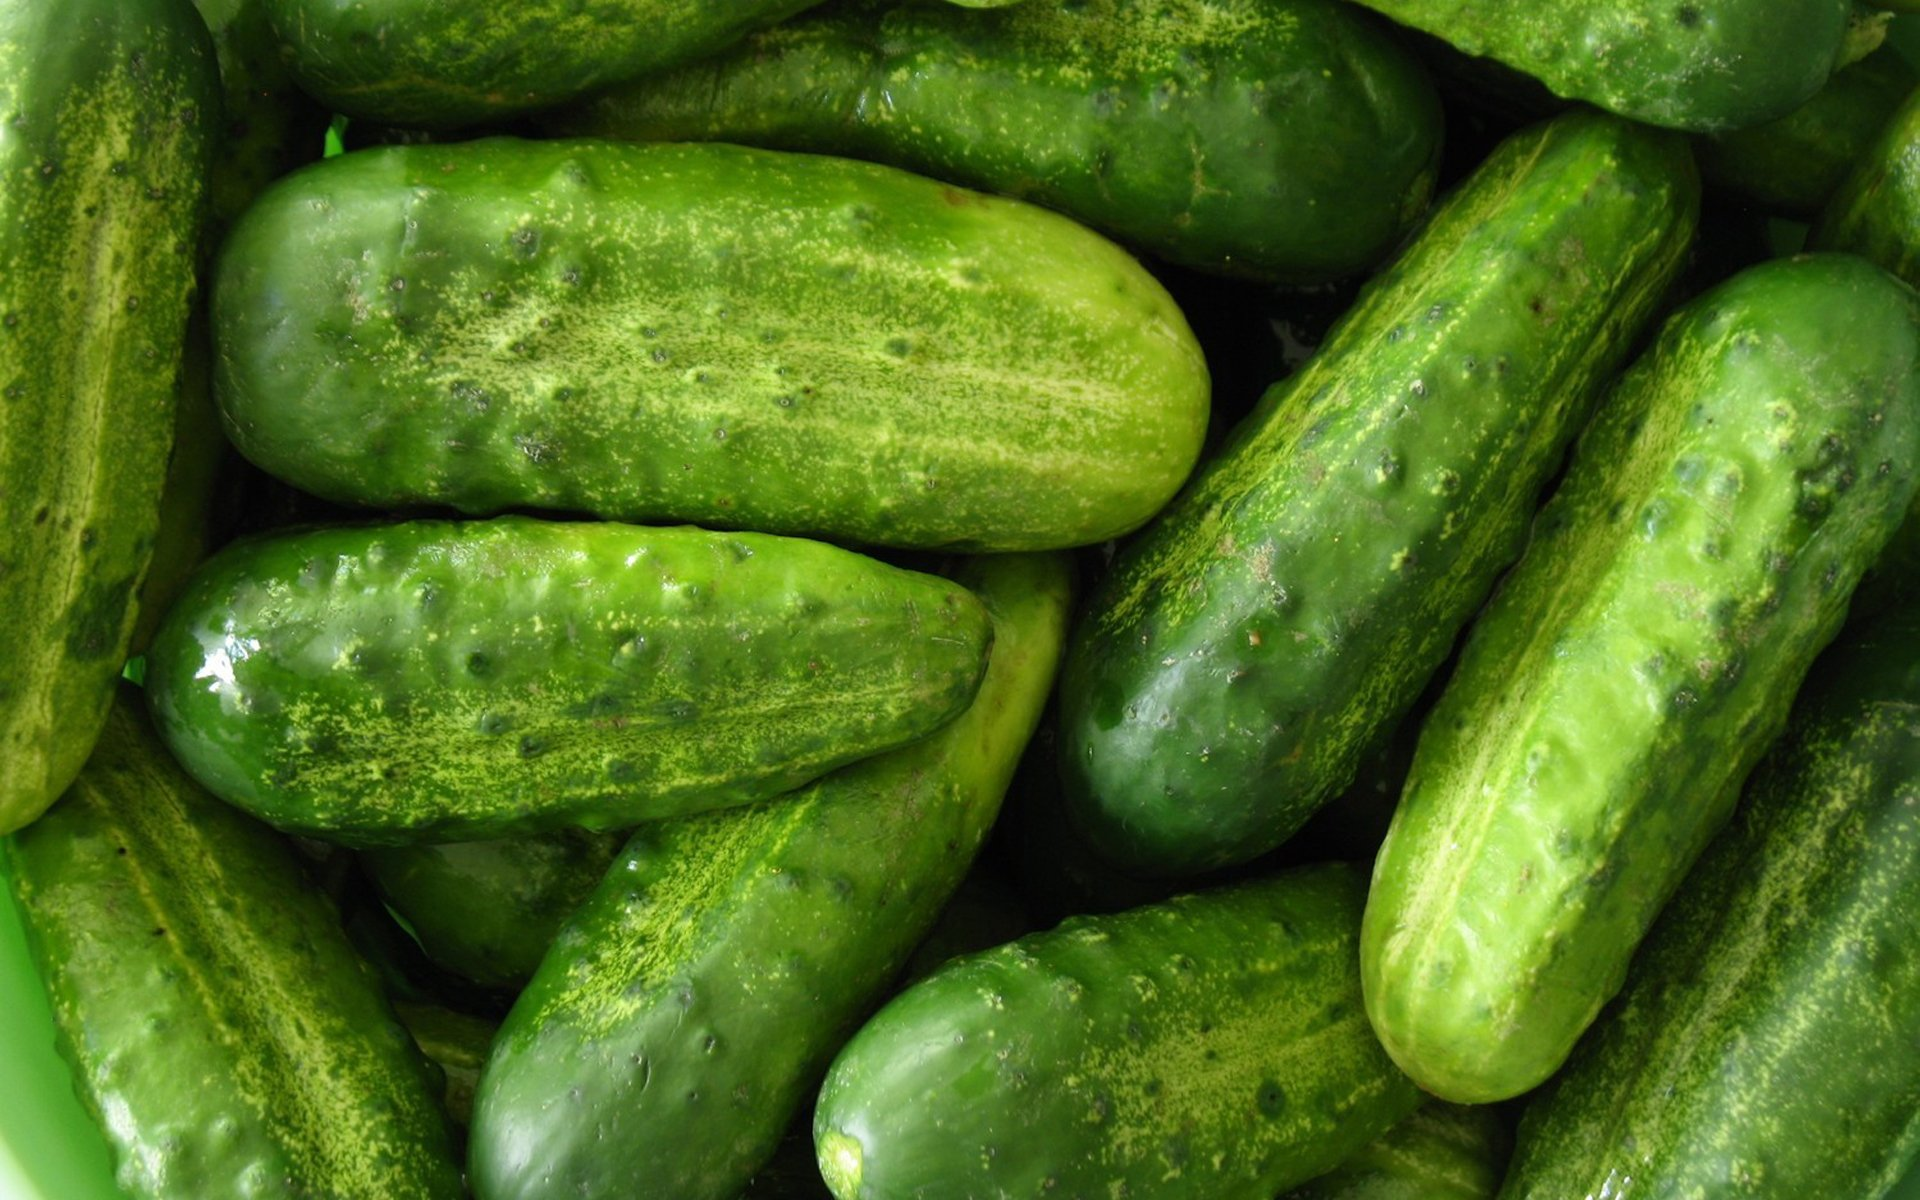 Cucumber HD Wallpaper | Background Image | 1920x1200 - Wallpaper Abyss